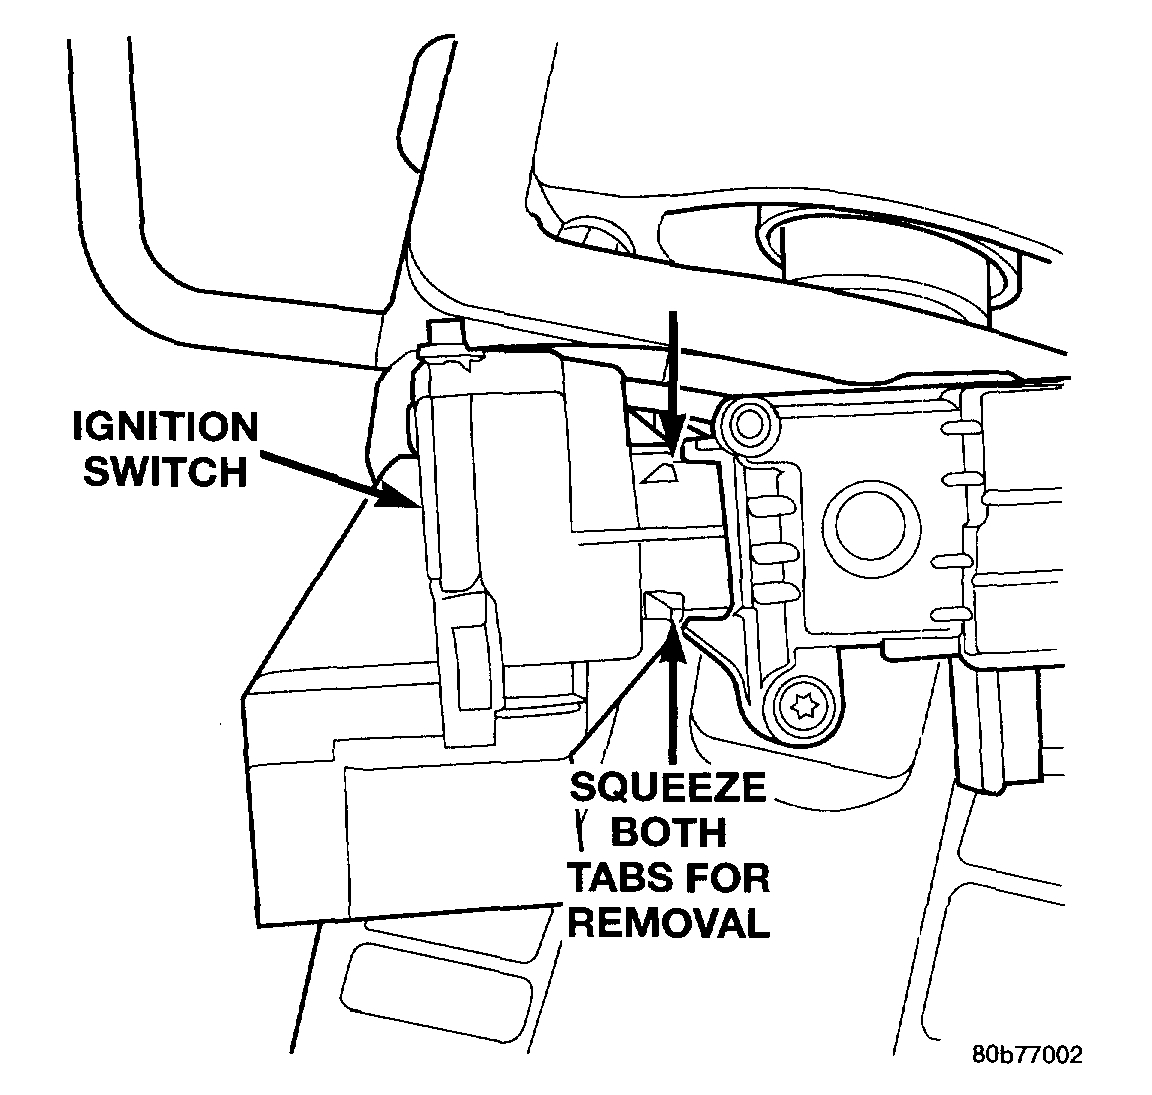 Ignition Switch Sometimes When I Try To Start It The Key